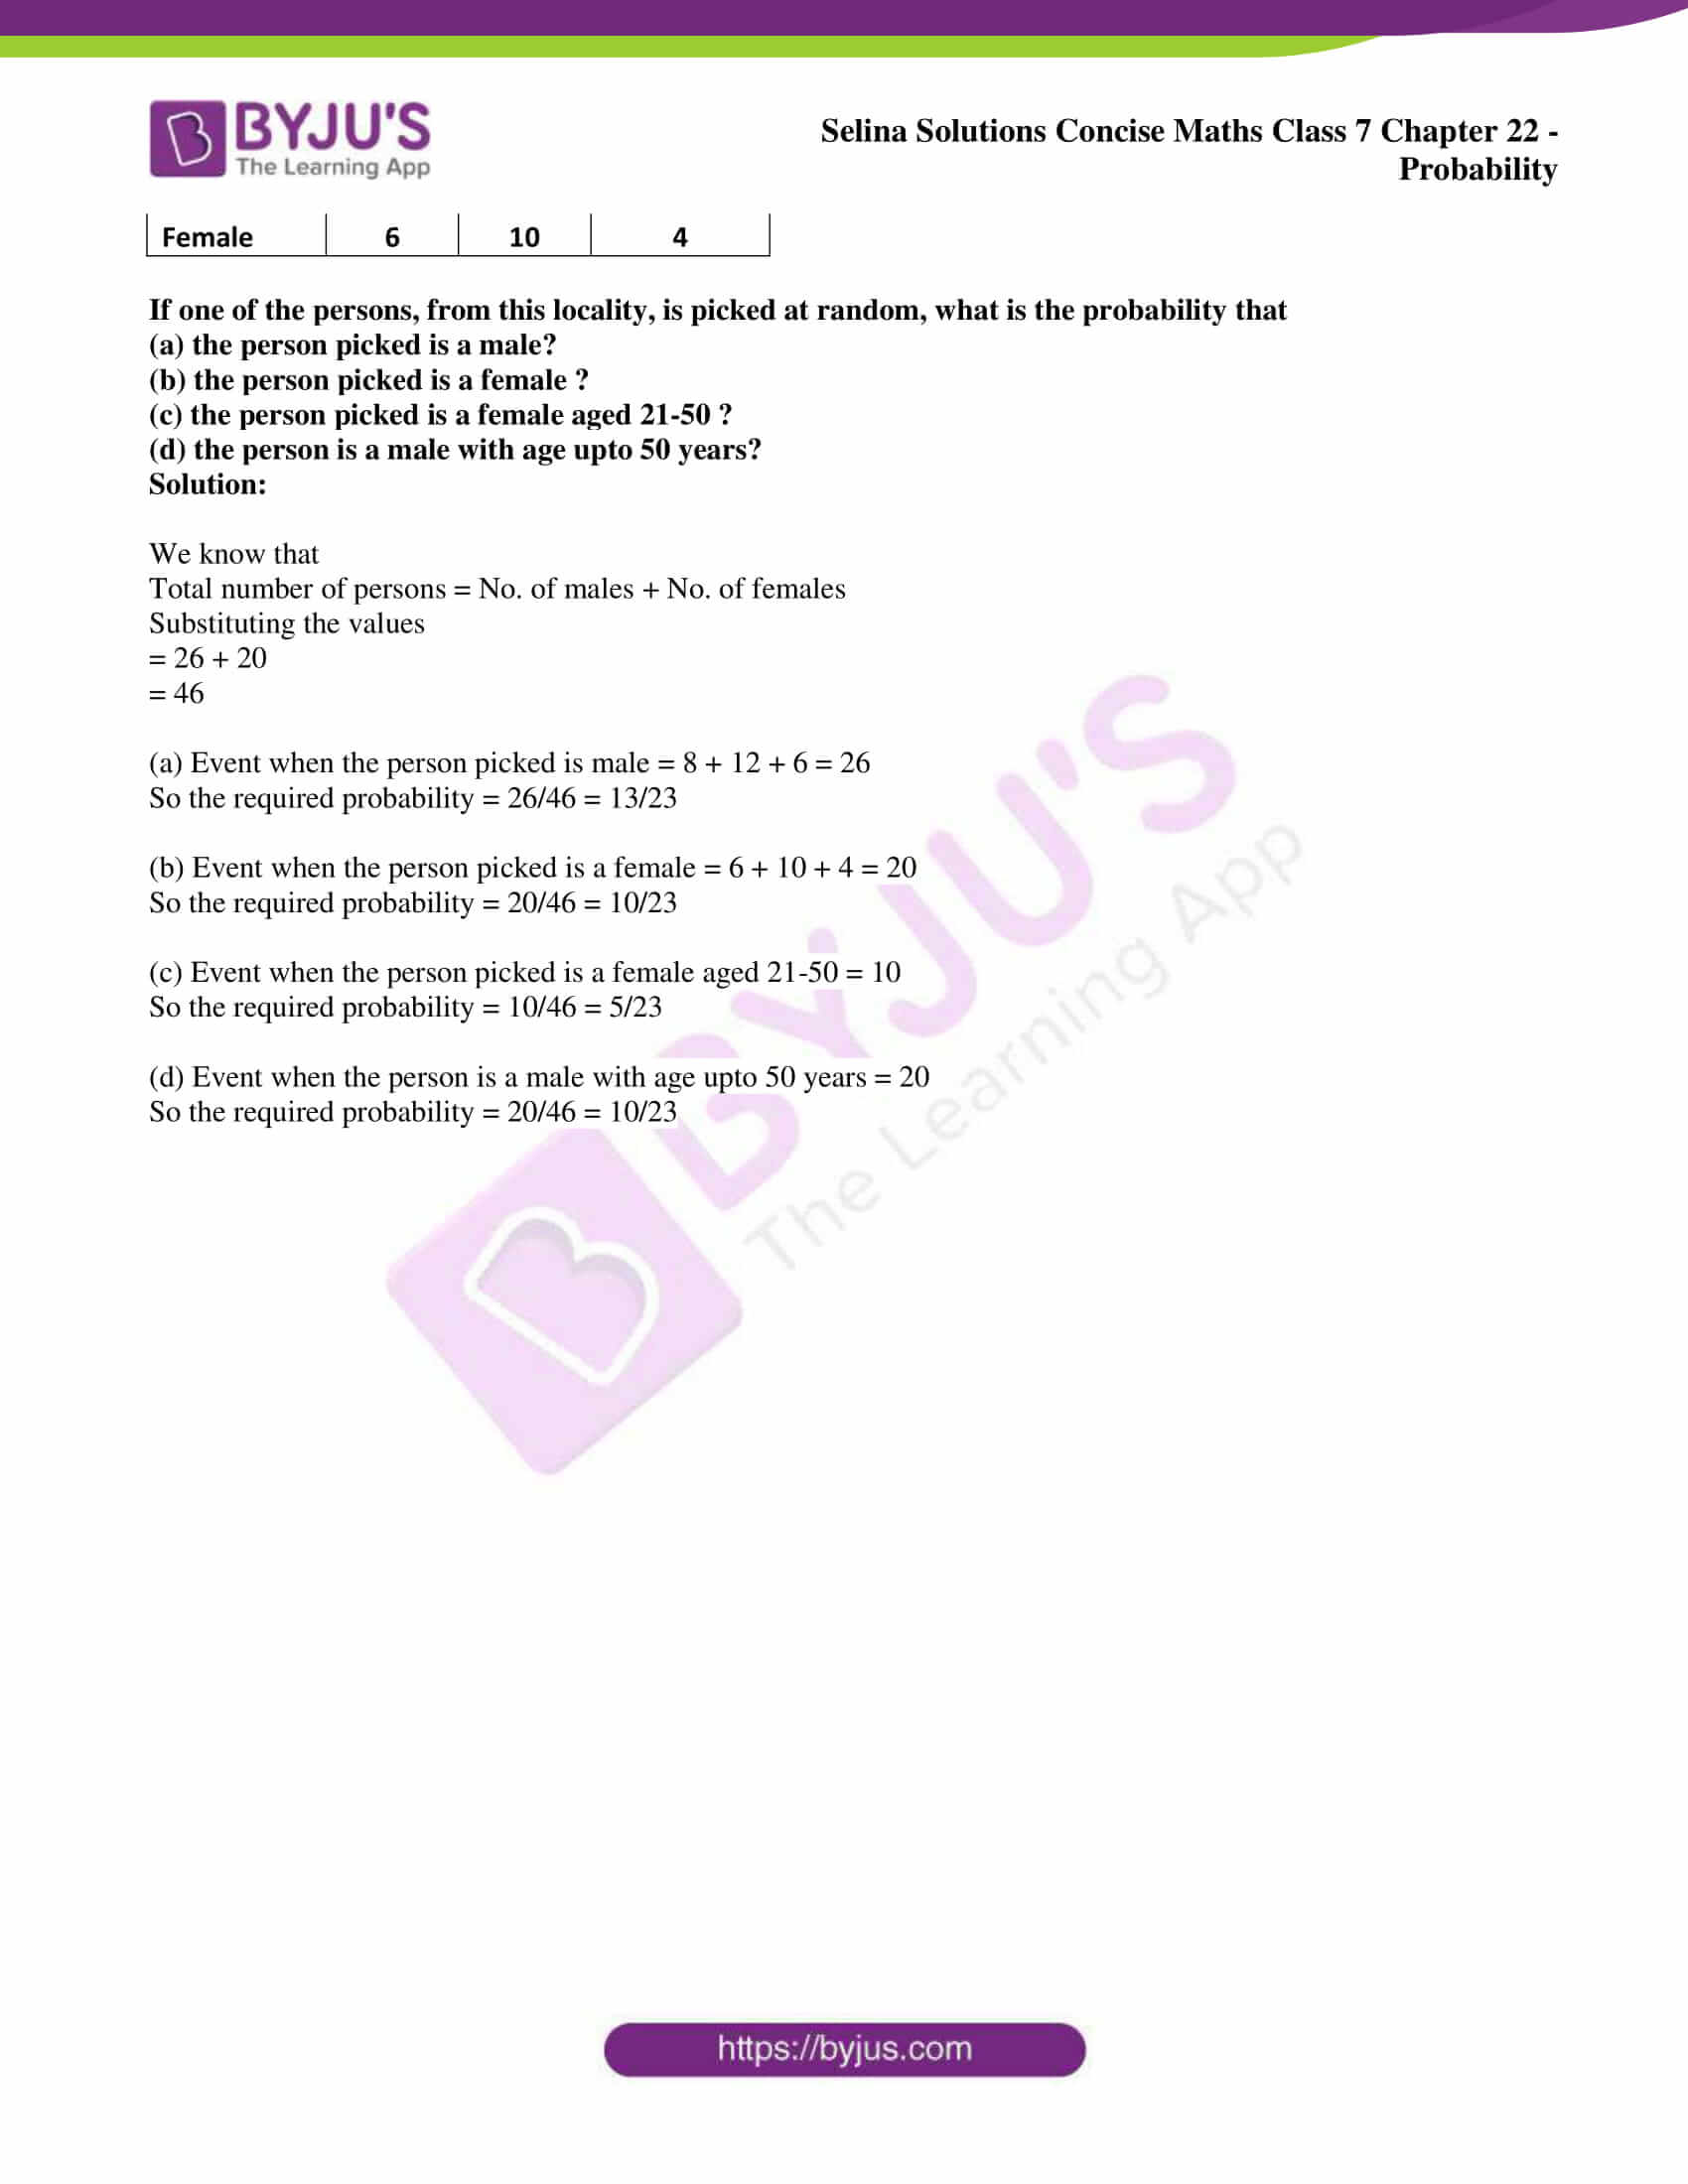 selina sol concise maths class 7 chapter 22 ex b 4